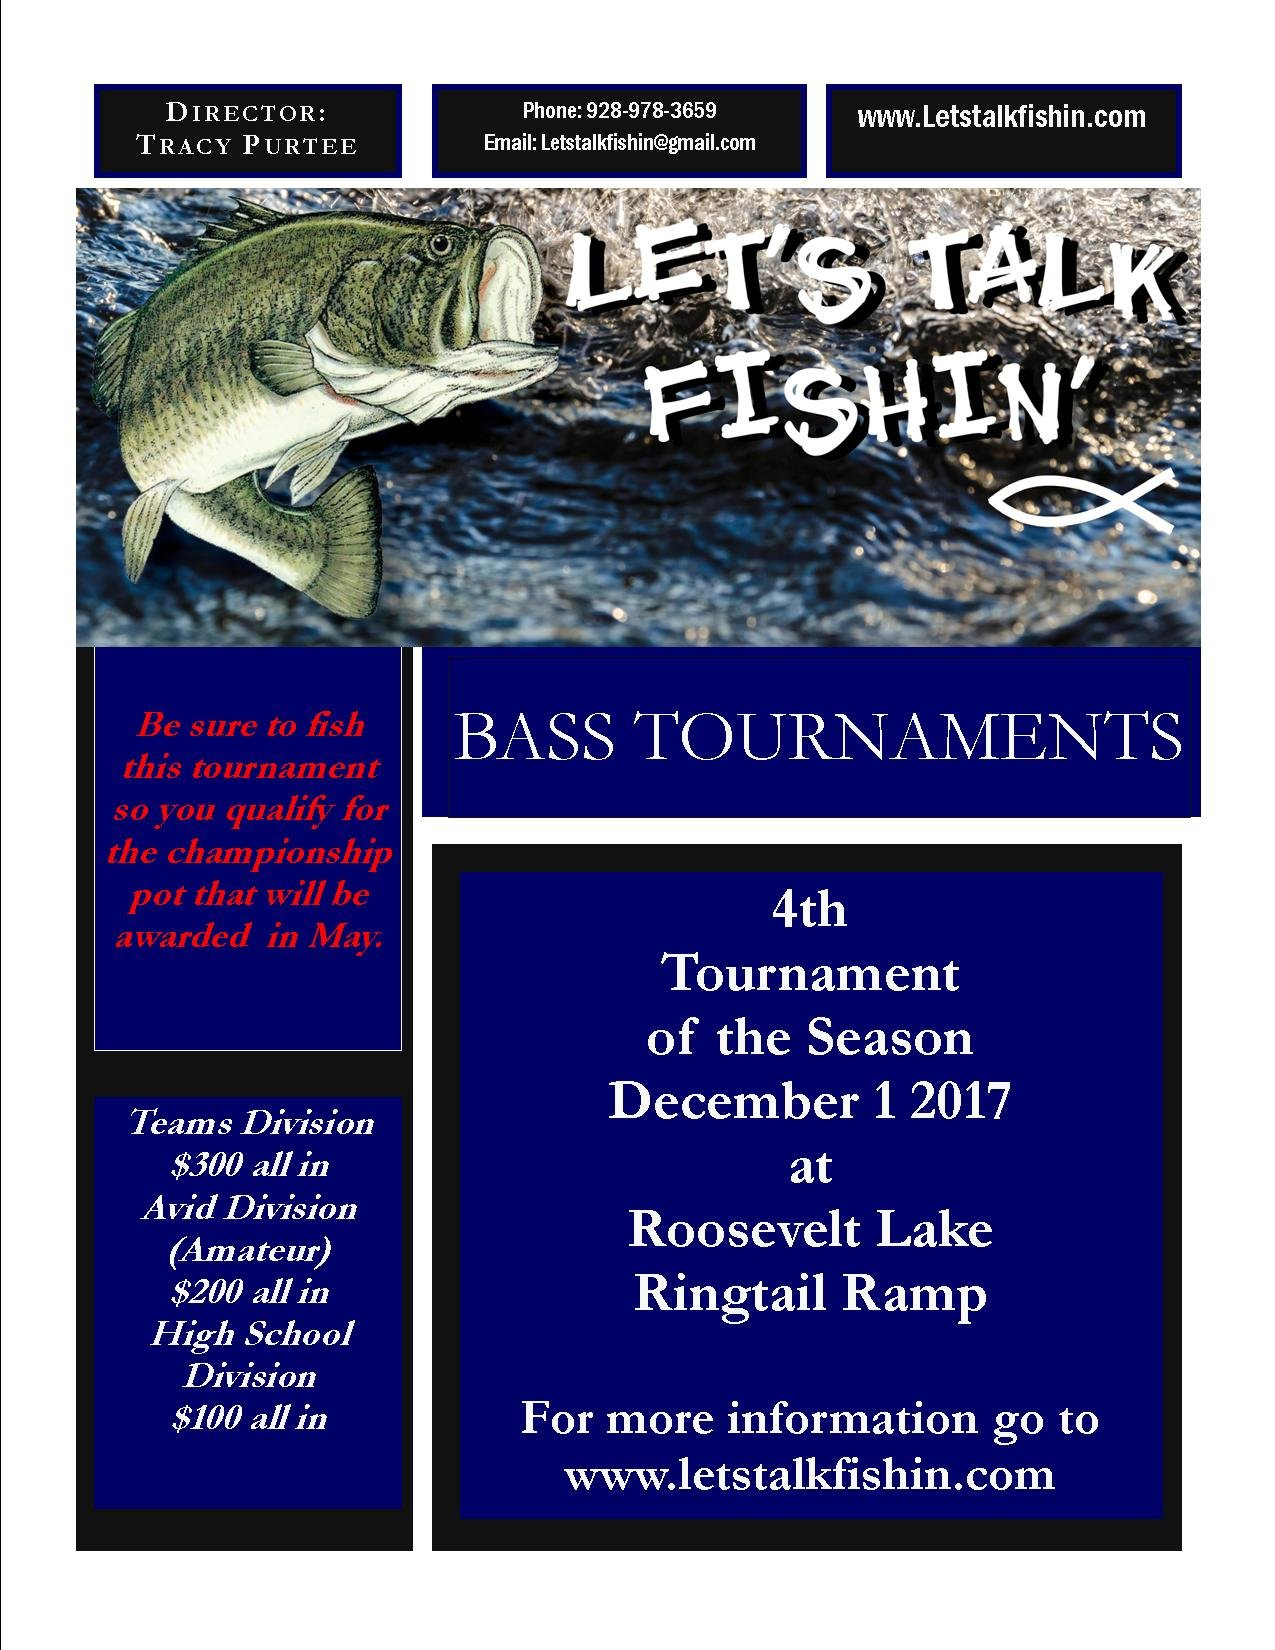 Click image for larger version  Name:4th Tournament.jpg Views:1518 Size:285.4 KB ID:96770